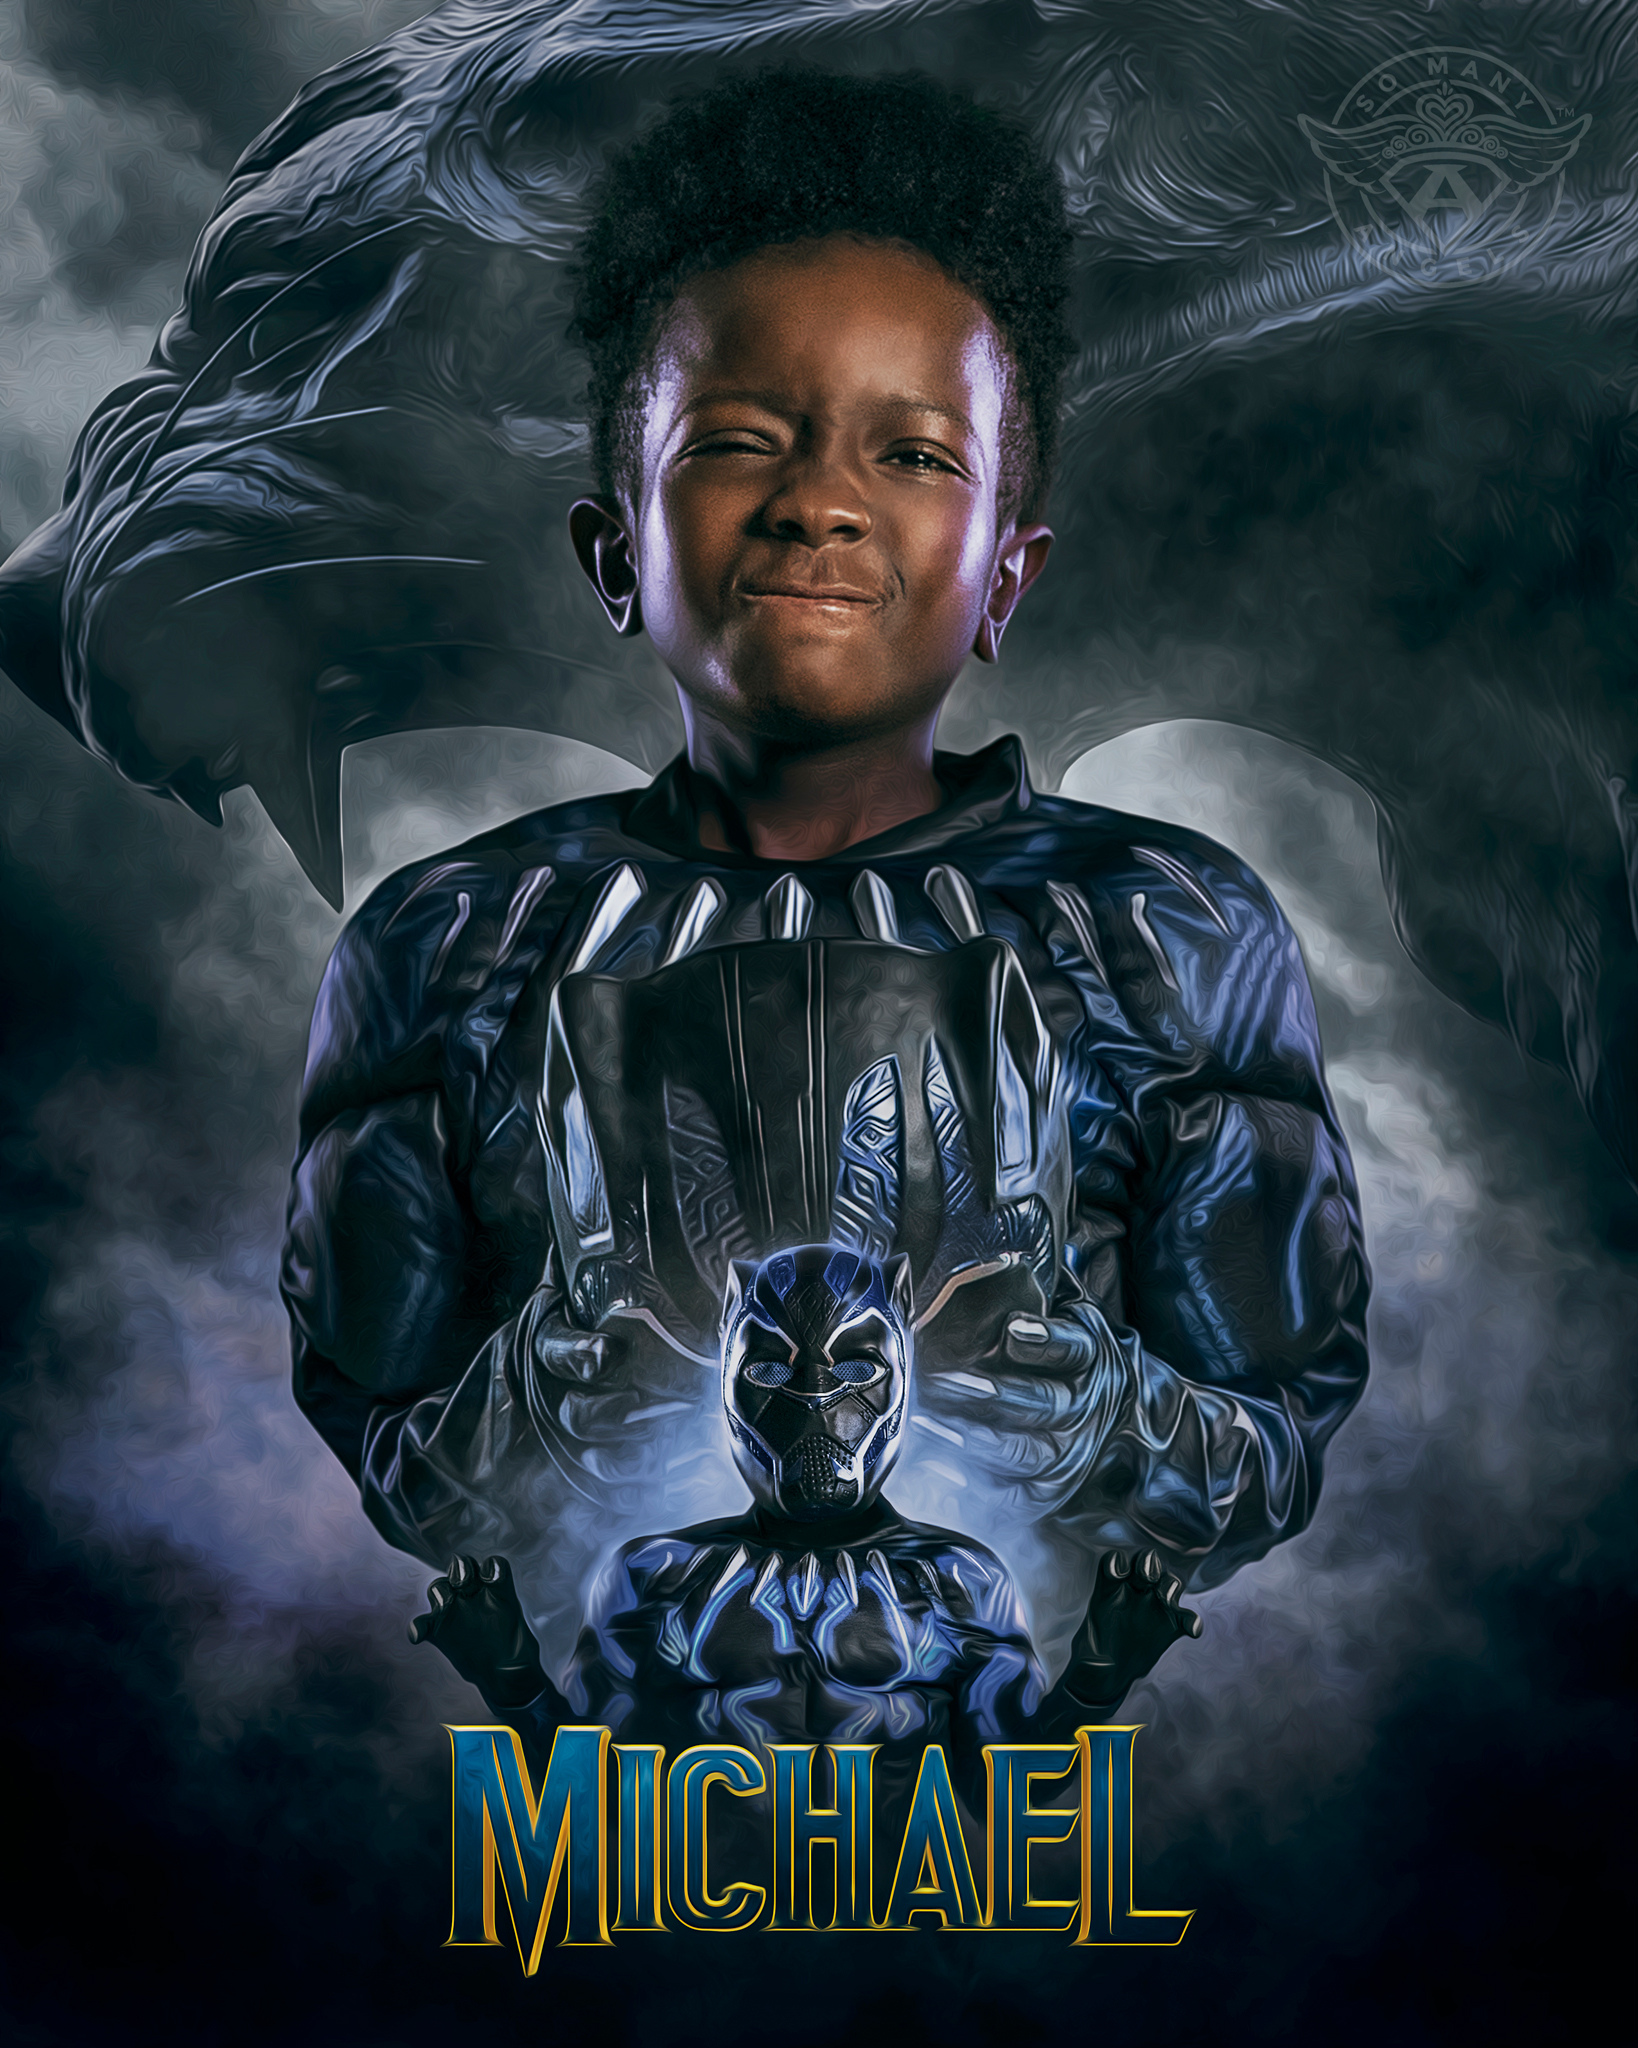 2019-So-Many-Angels-Rally-Foundation-Pensacola-Michael-Black-Panther-Social-Media.jpg